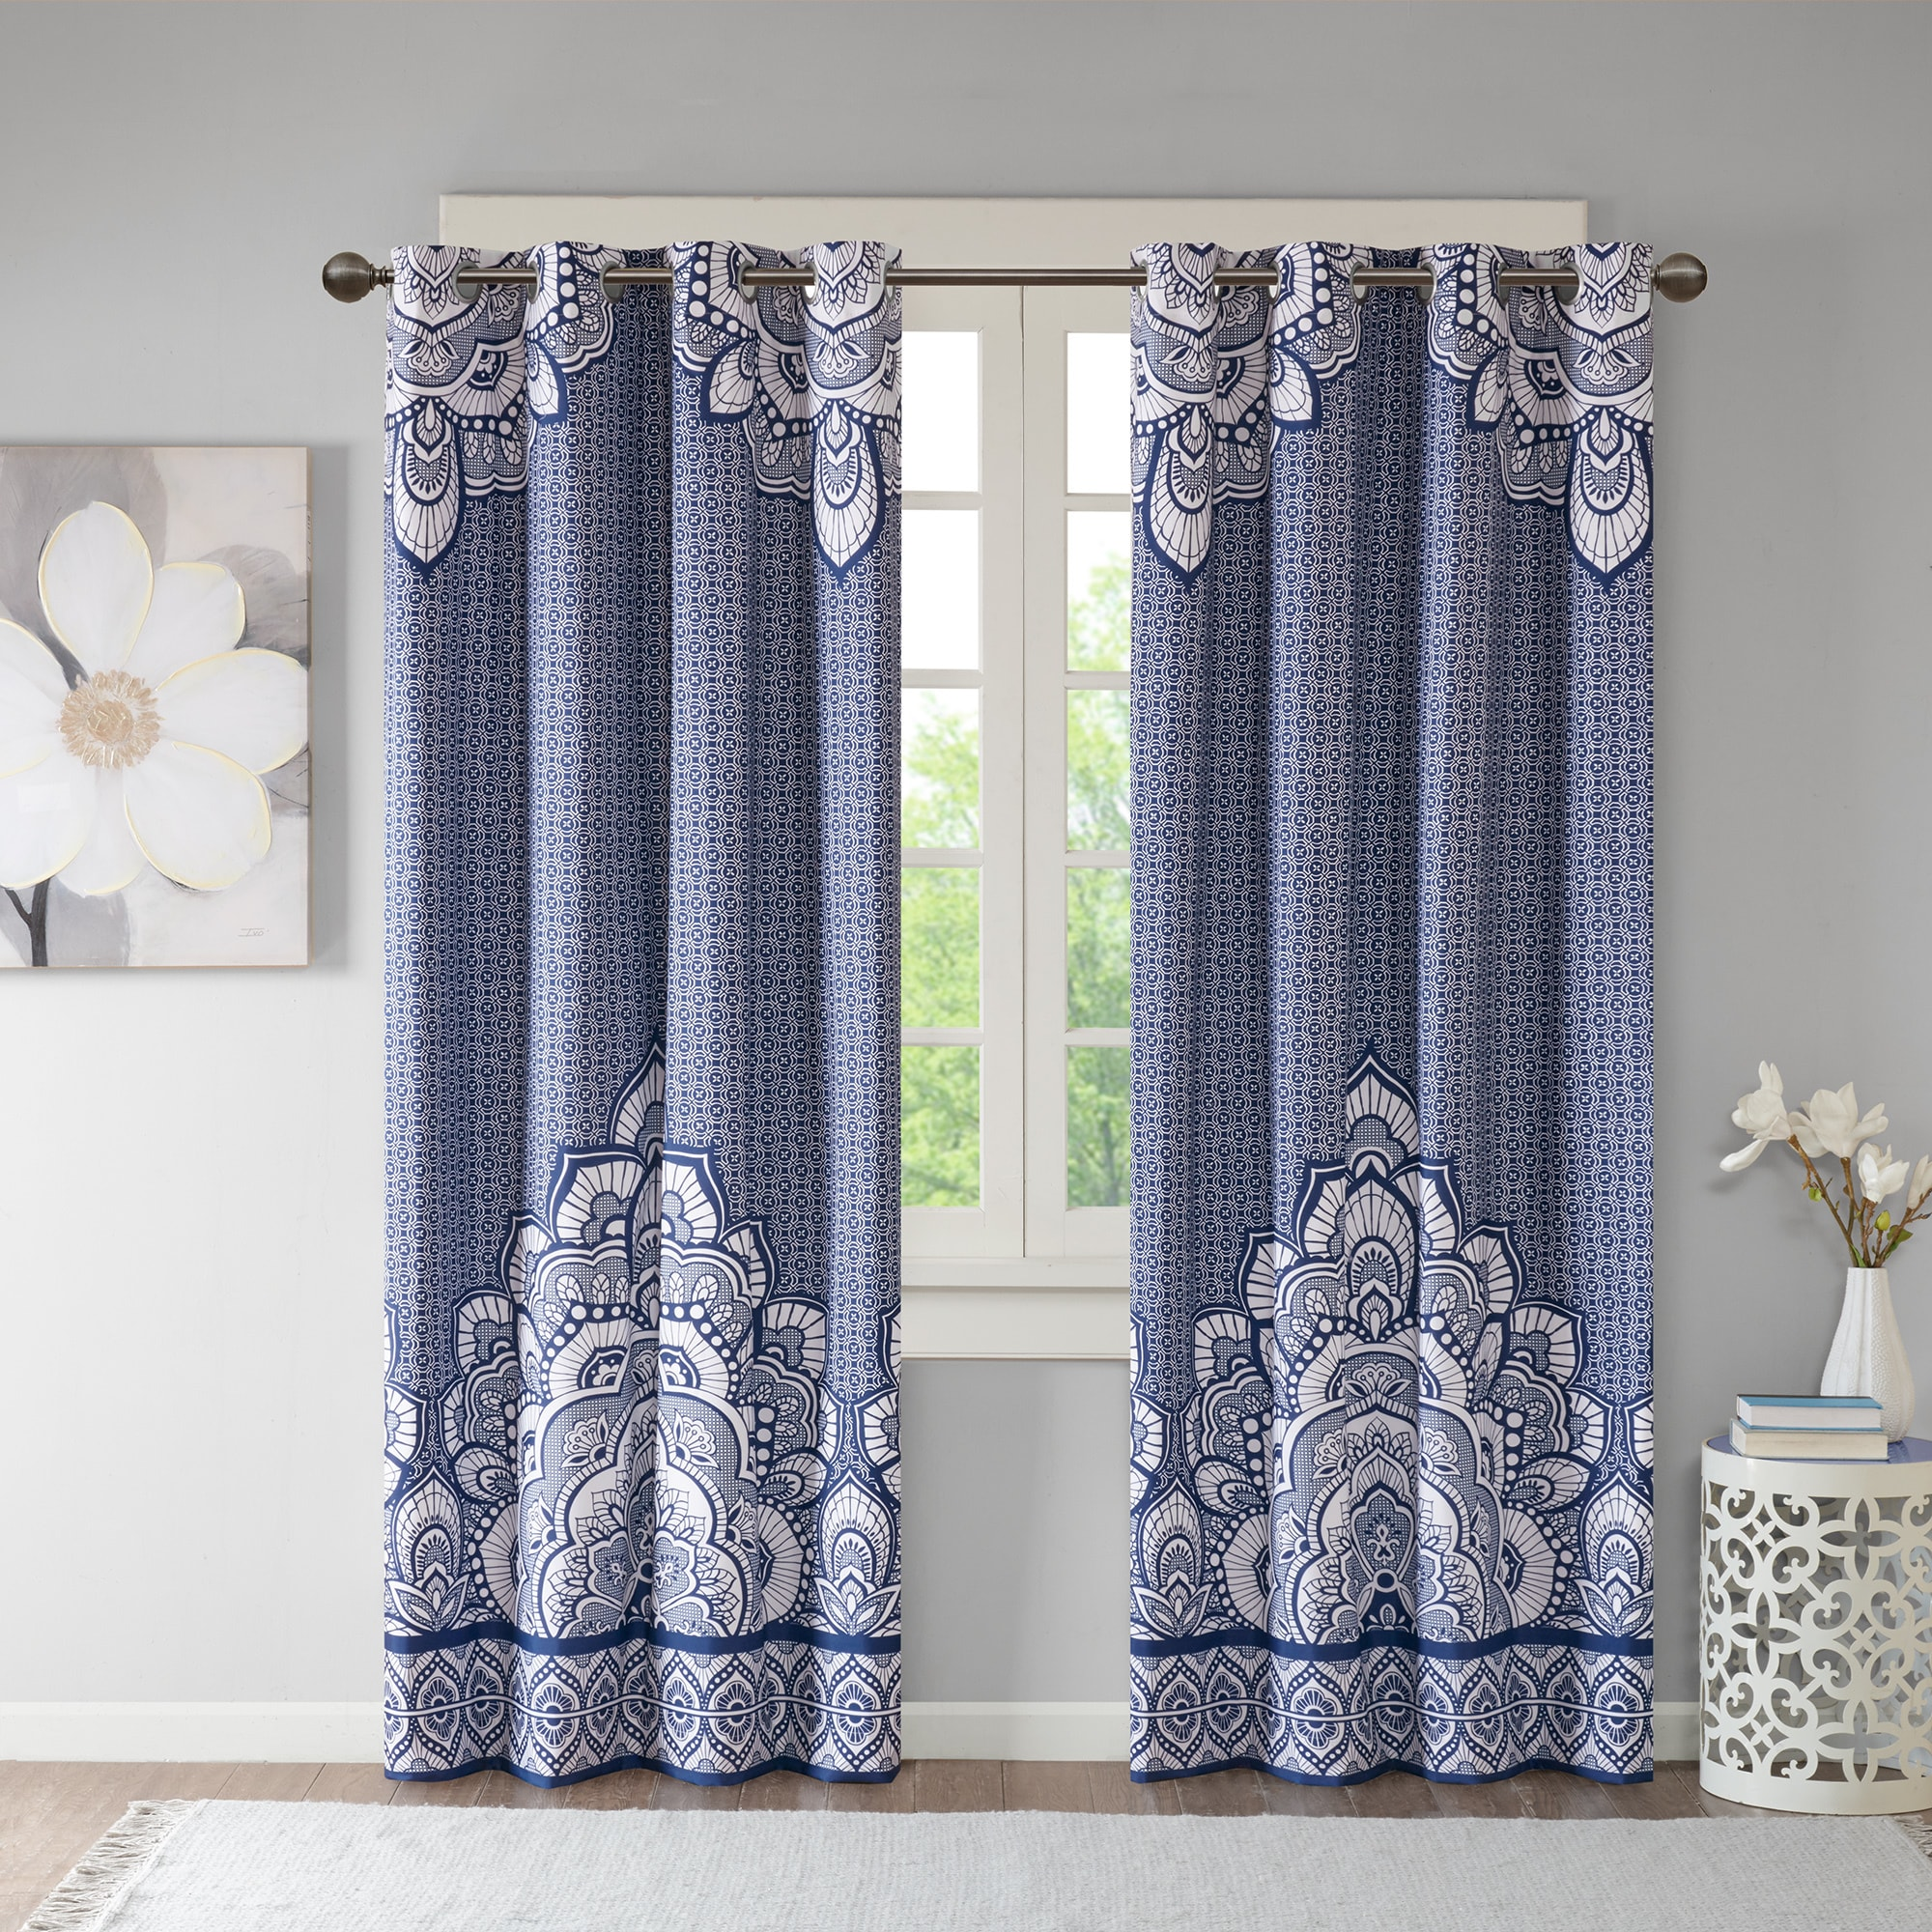 Shop Intelligent Design Simone Printed Lined Blackout Window Curtain Panel